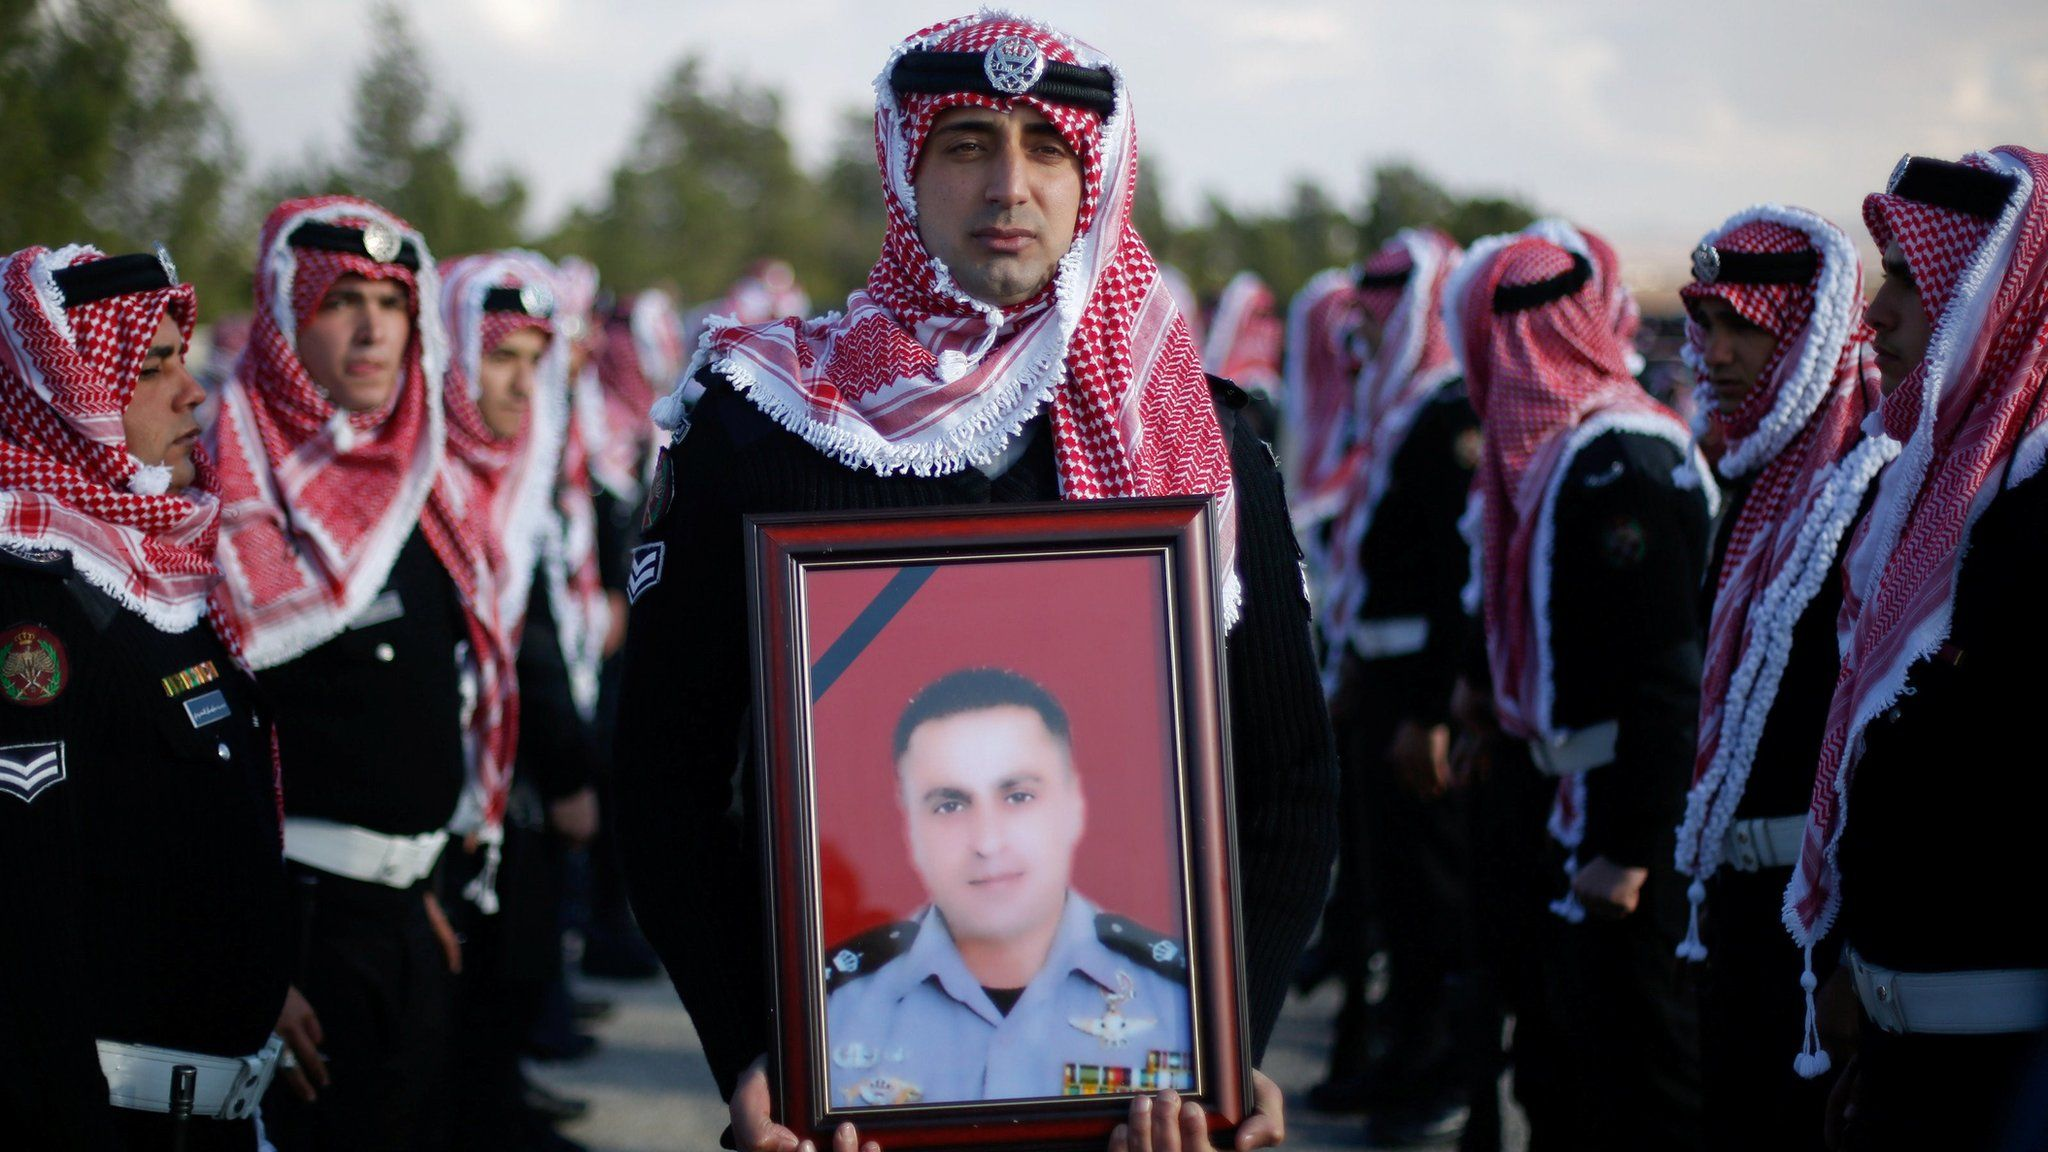 Guard of honour carries a picture of soldier killed during an attack in Karak, Jordan (19 December 2016)